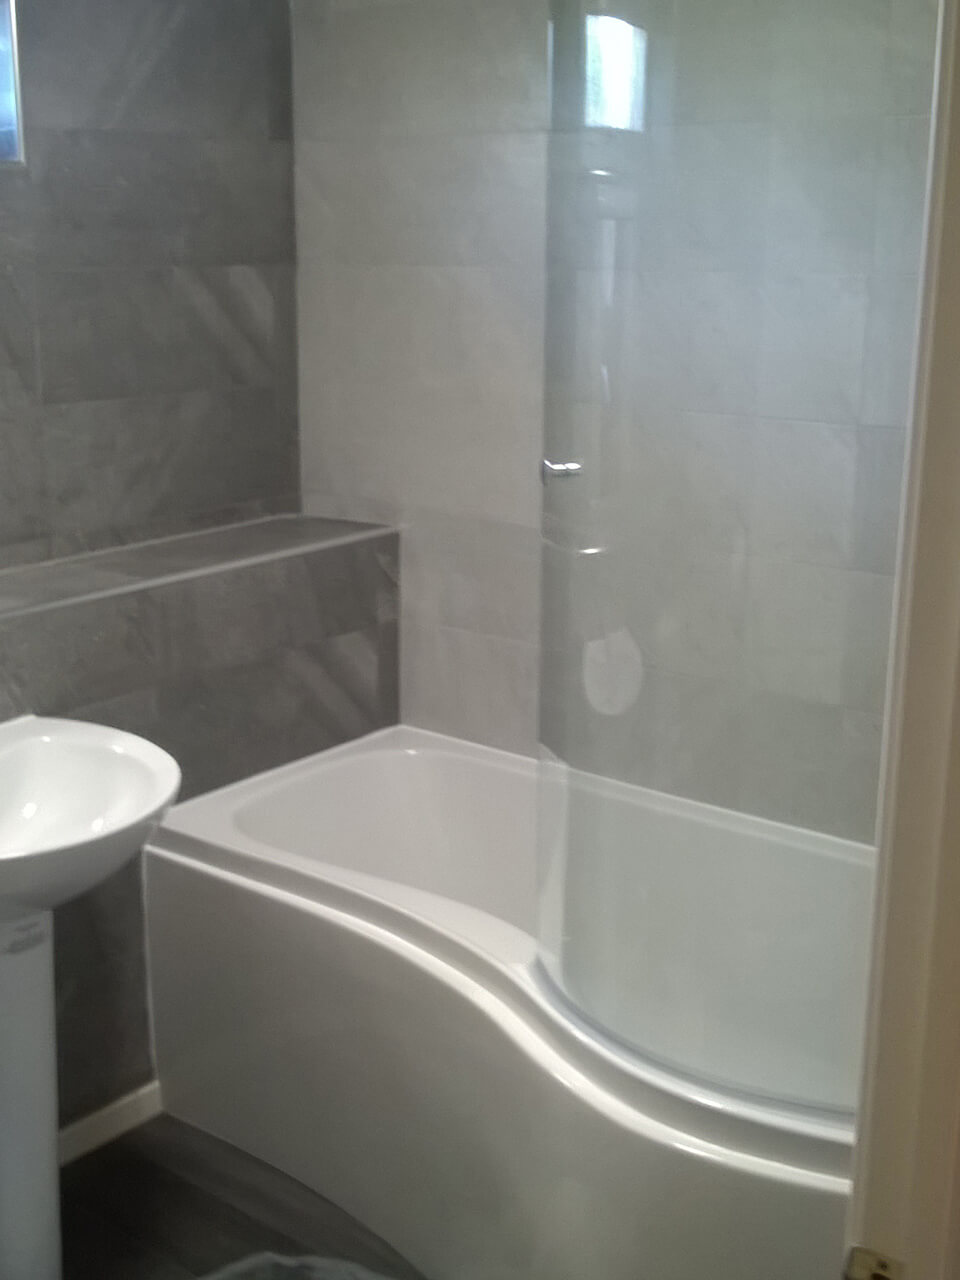 ashmore_plumbing_building_blackpool_bathroom_installation_27